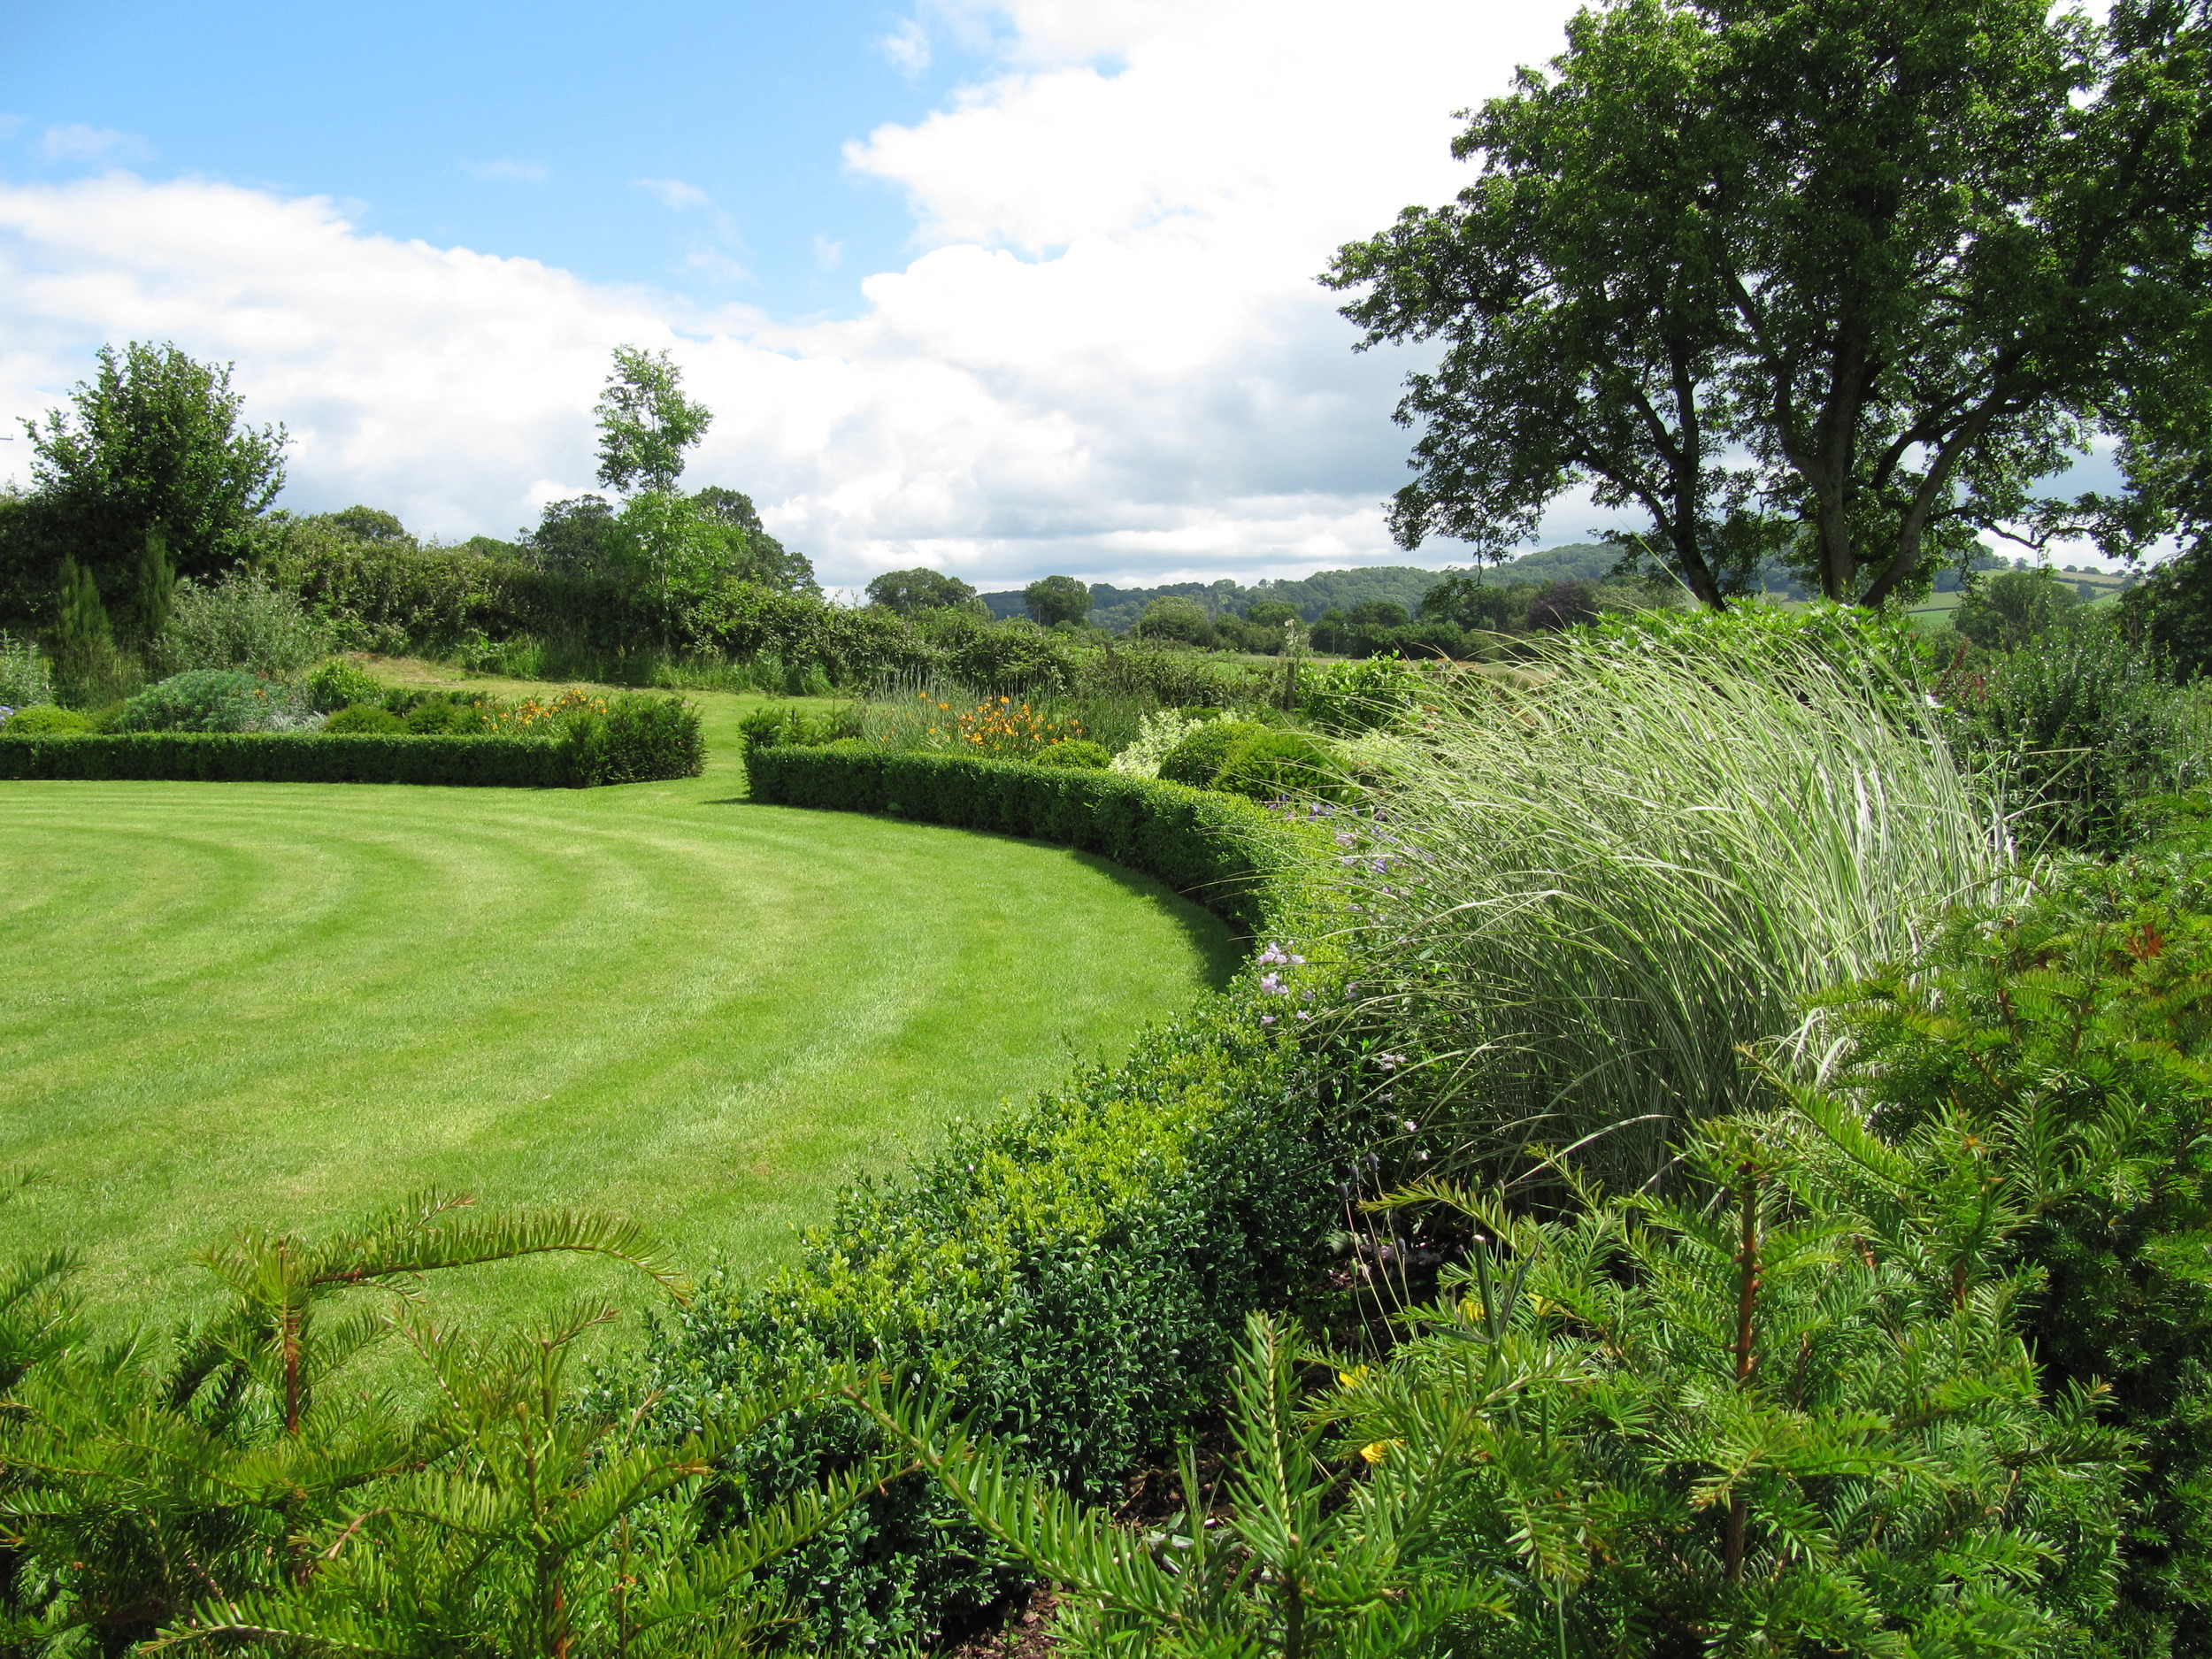 Clipped box hedging surrounding a circular lawn emphasis its dramatic shape.